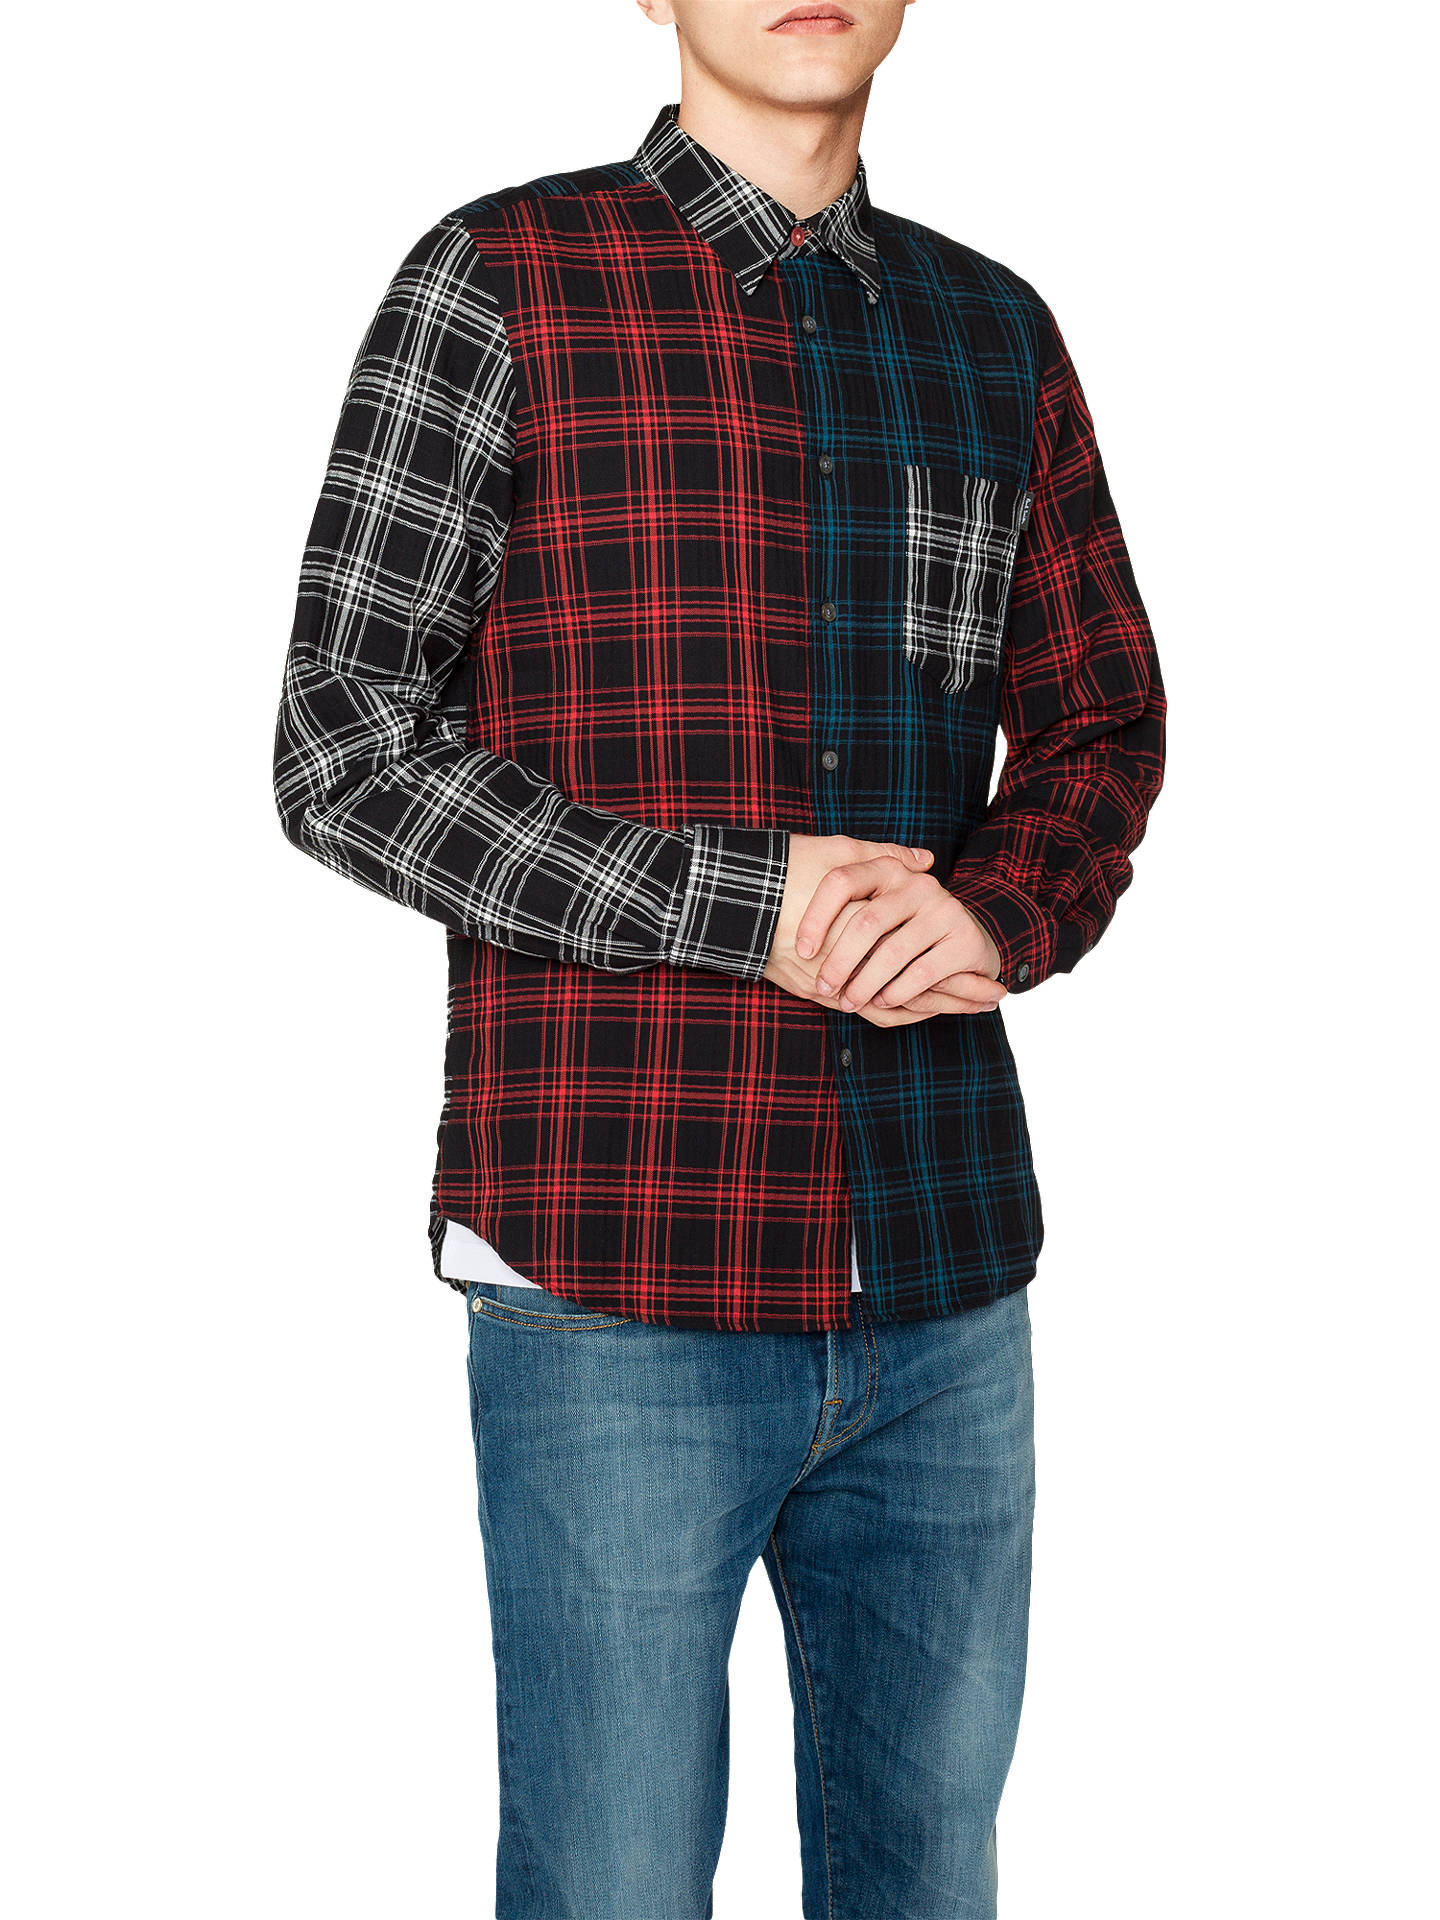 012be02c978862 Buy PS Paul Smith Multi Check Shirt, Multi, XL Online at johnlewis.com ...